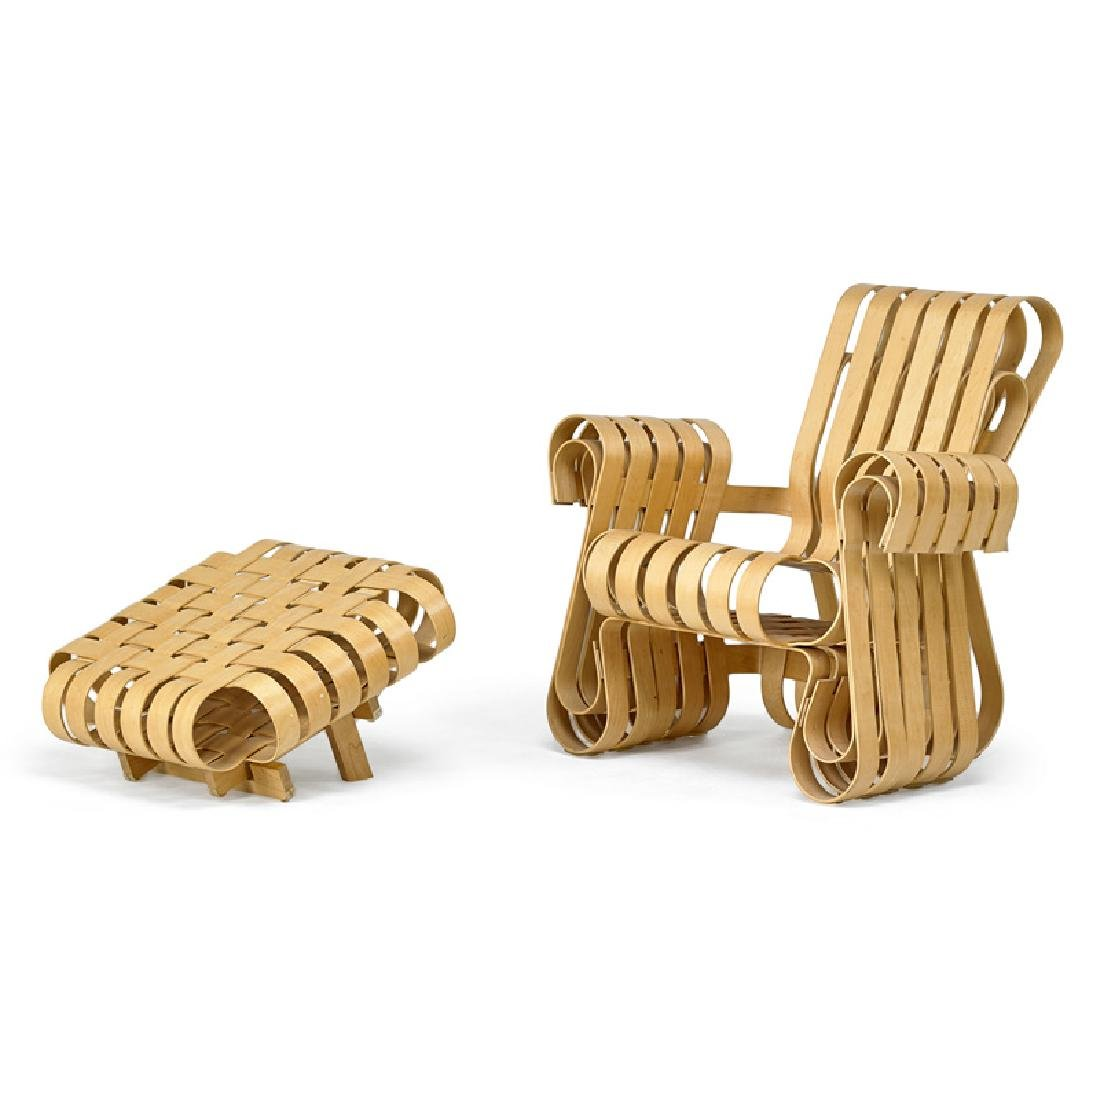 FRANK GEHRY Power Play chair and ottoman